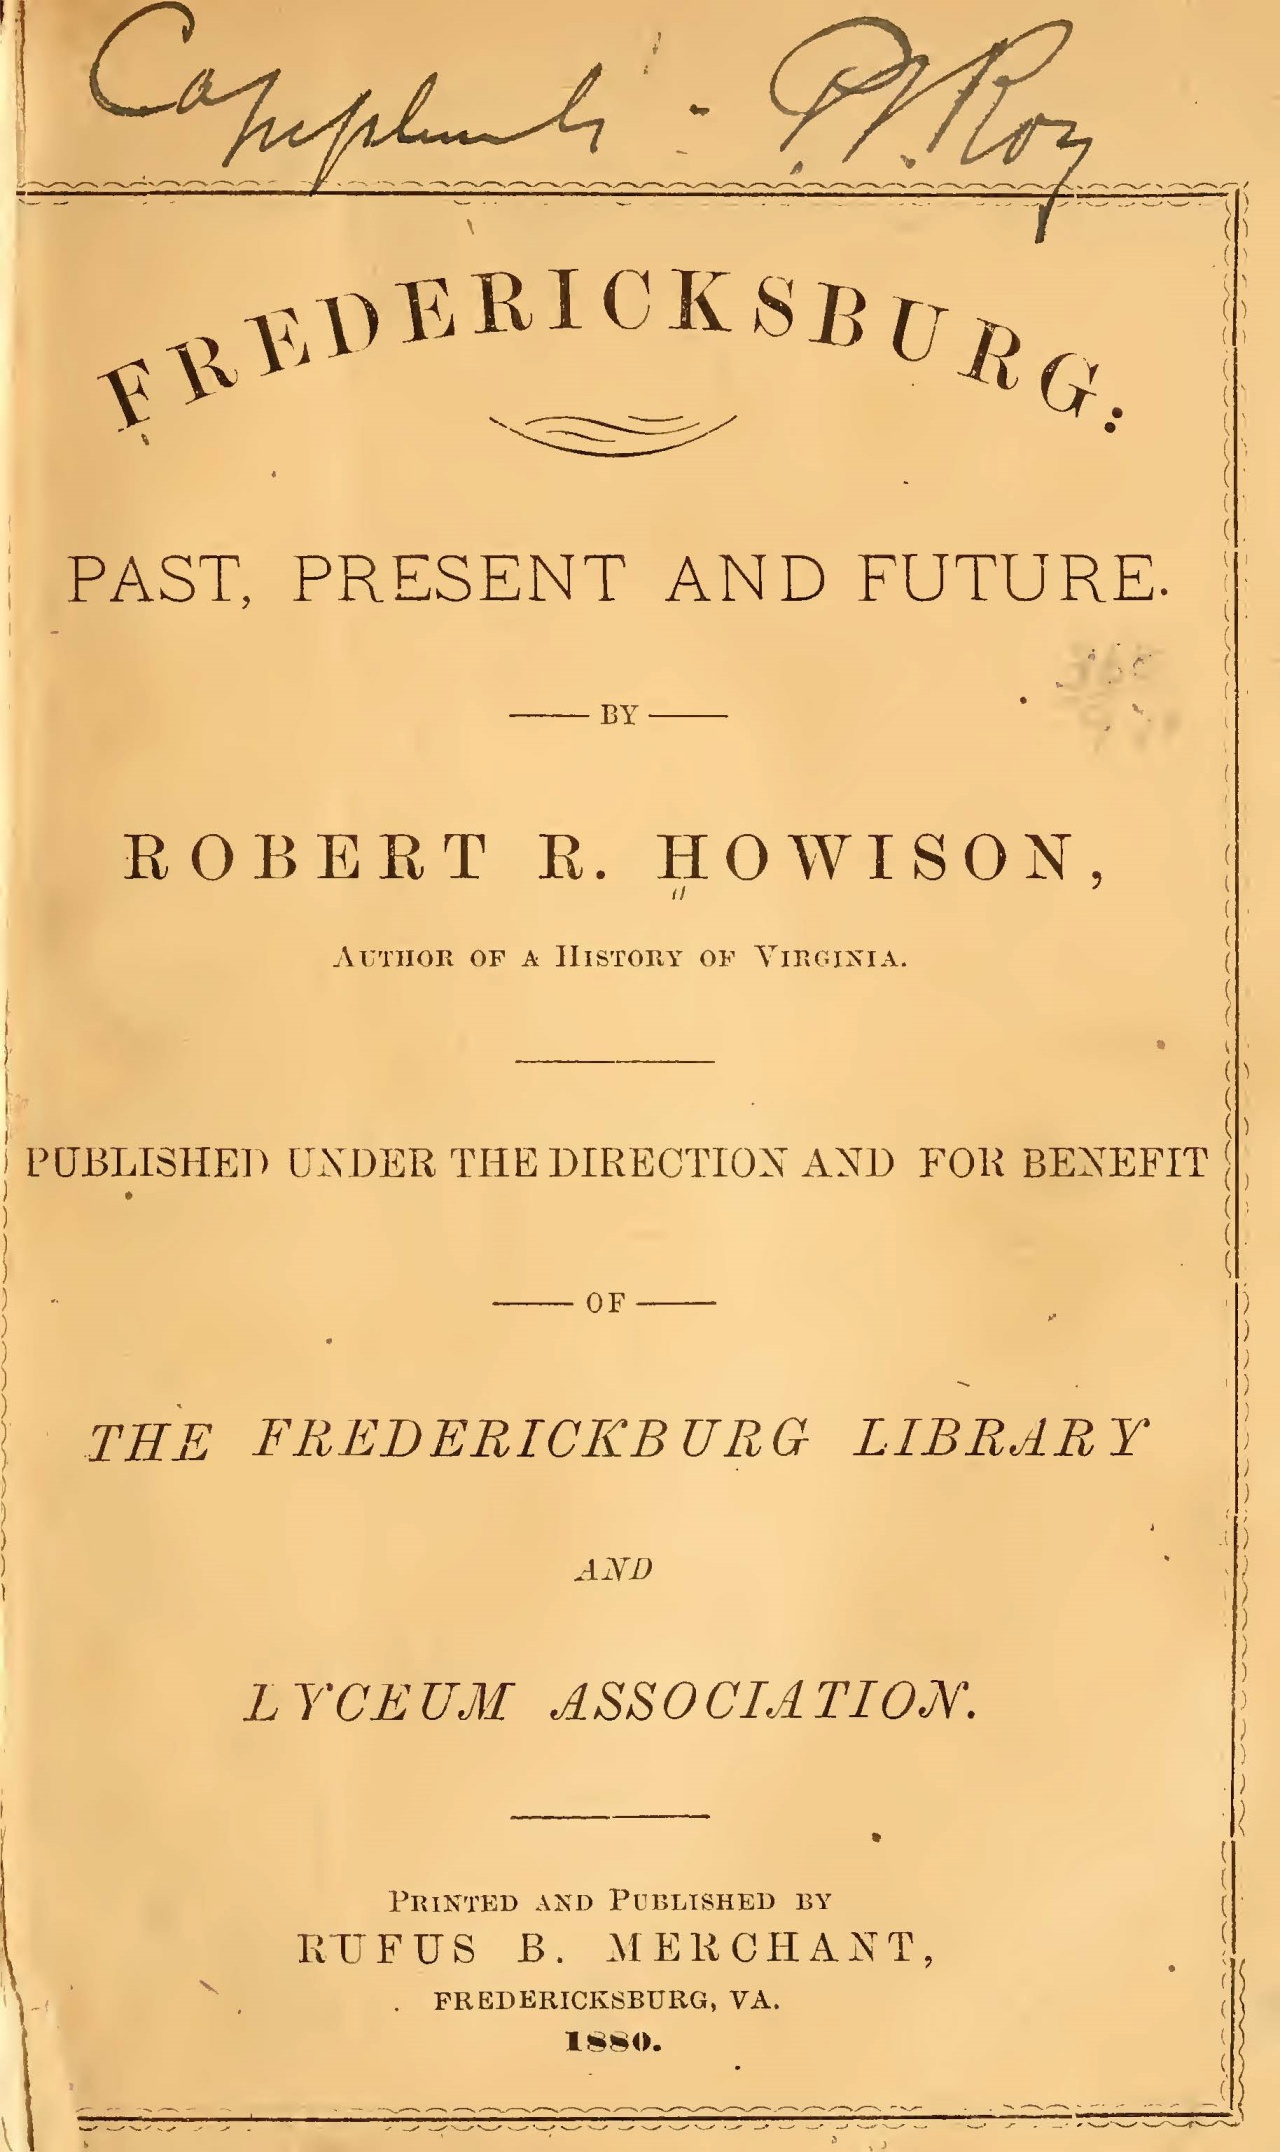 Howison, Robert Reid, Fredericksburg Past, Present and Future Title Page.jpg